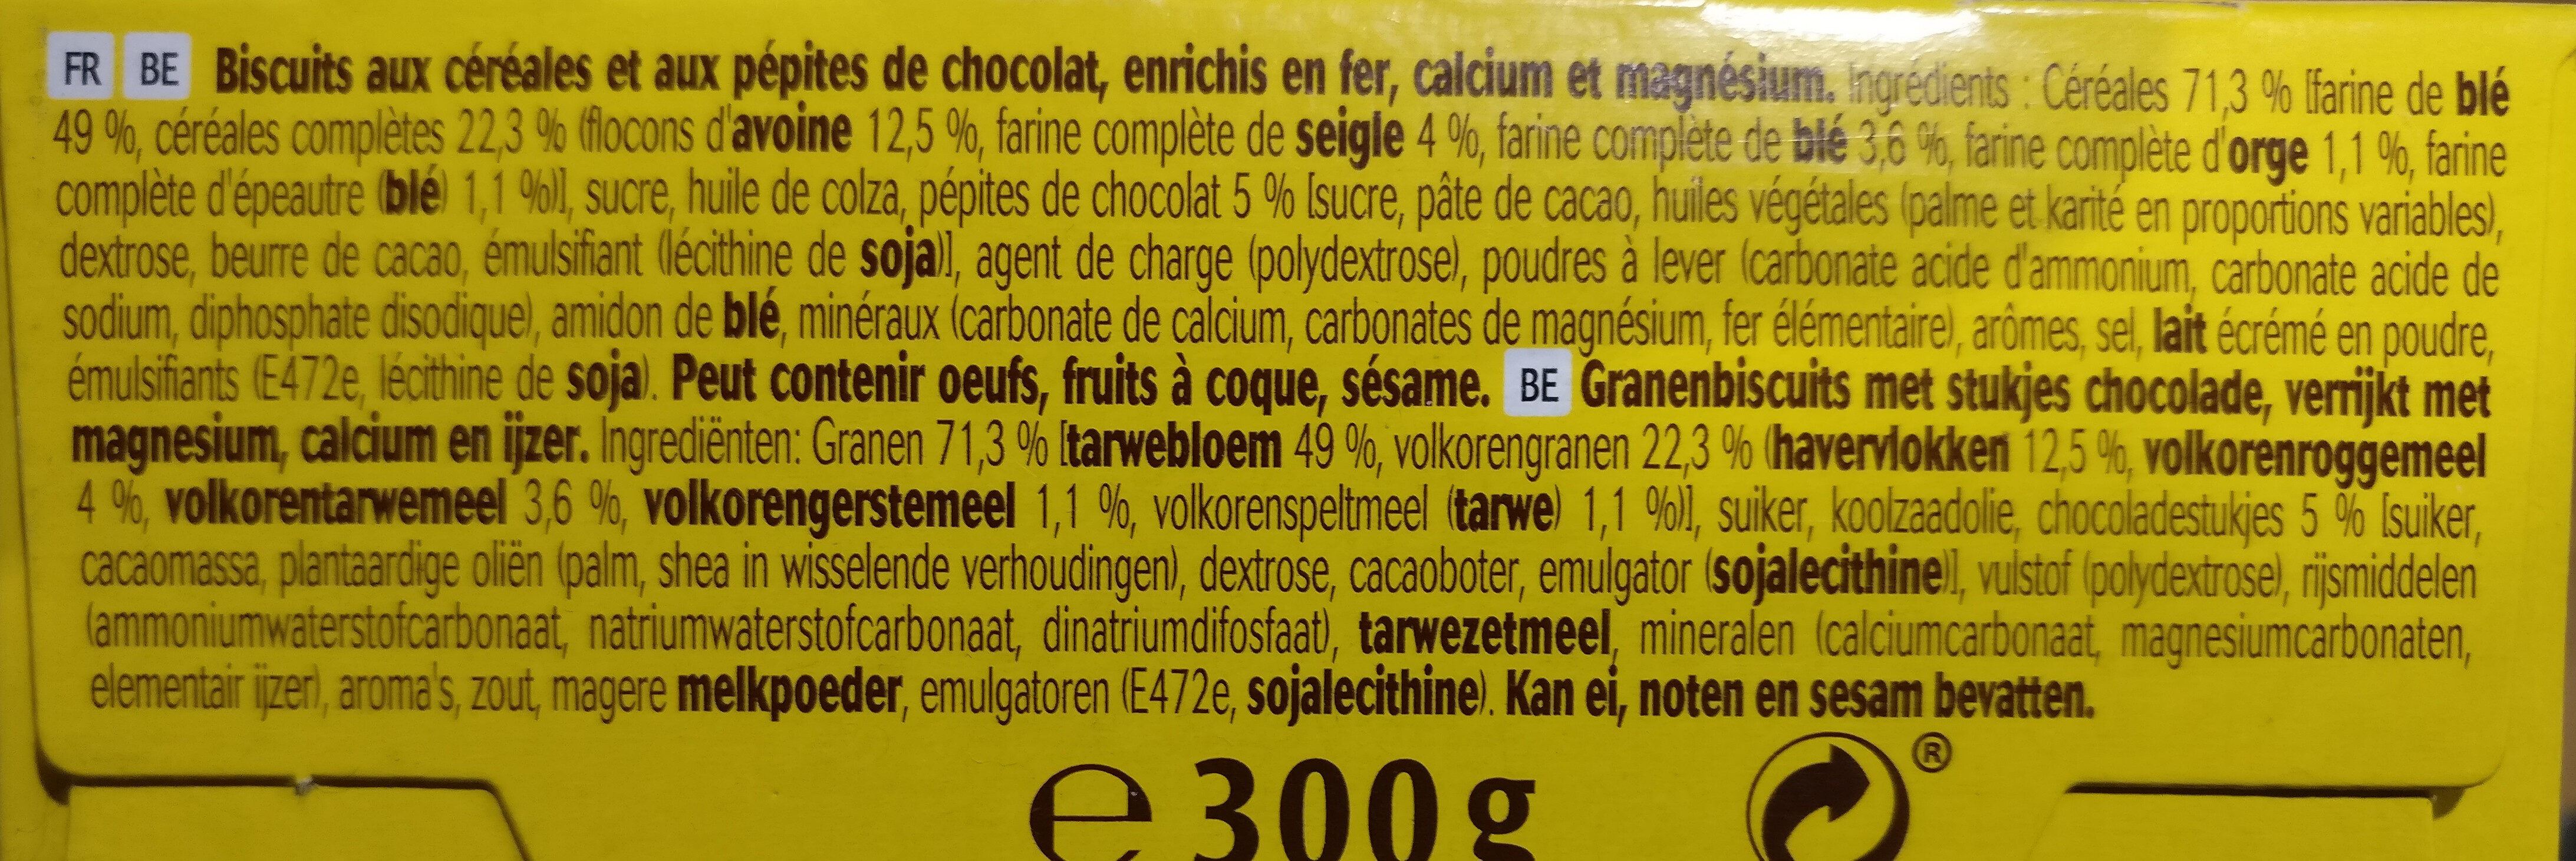 Belvita petit déjeuner original pépites chocolat - Ingredients - fr